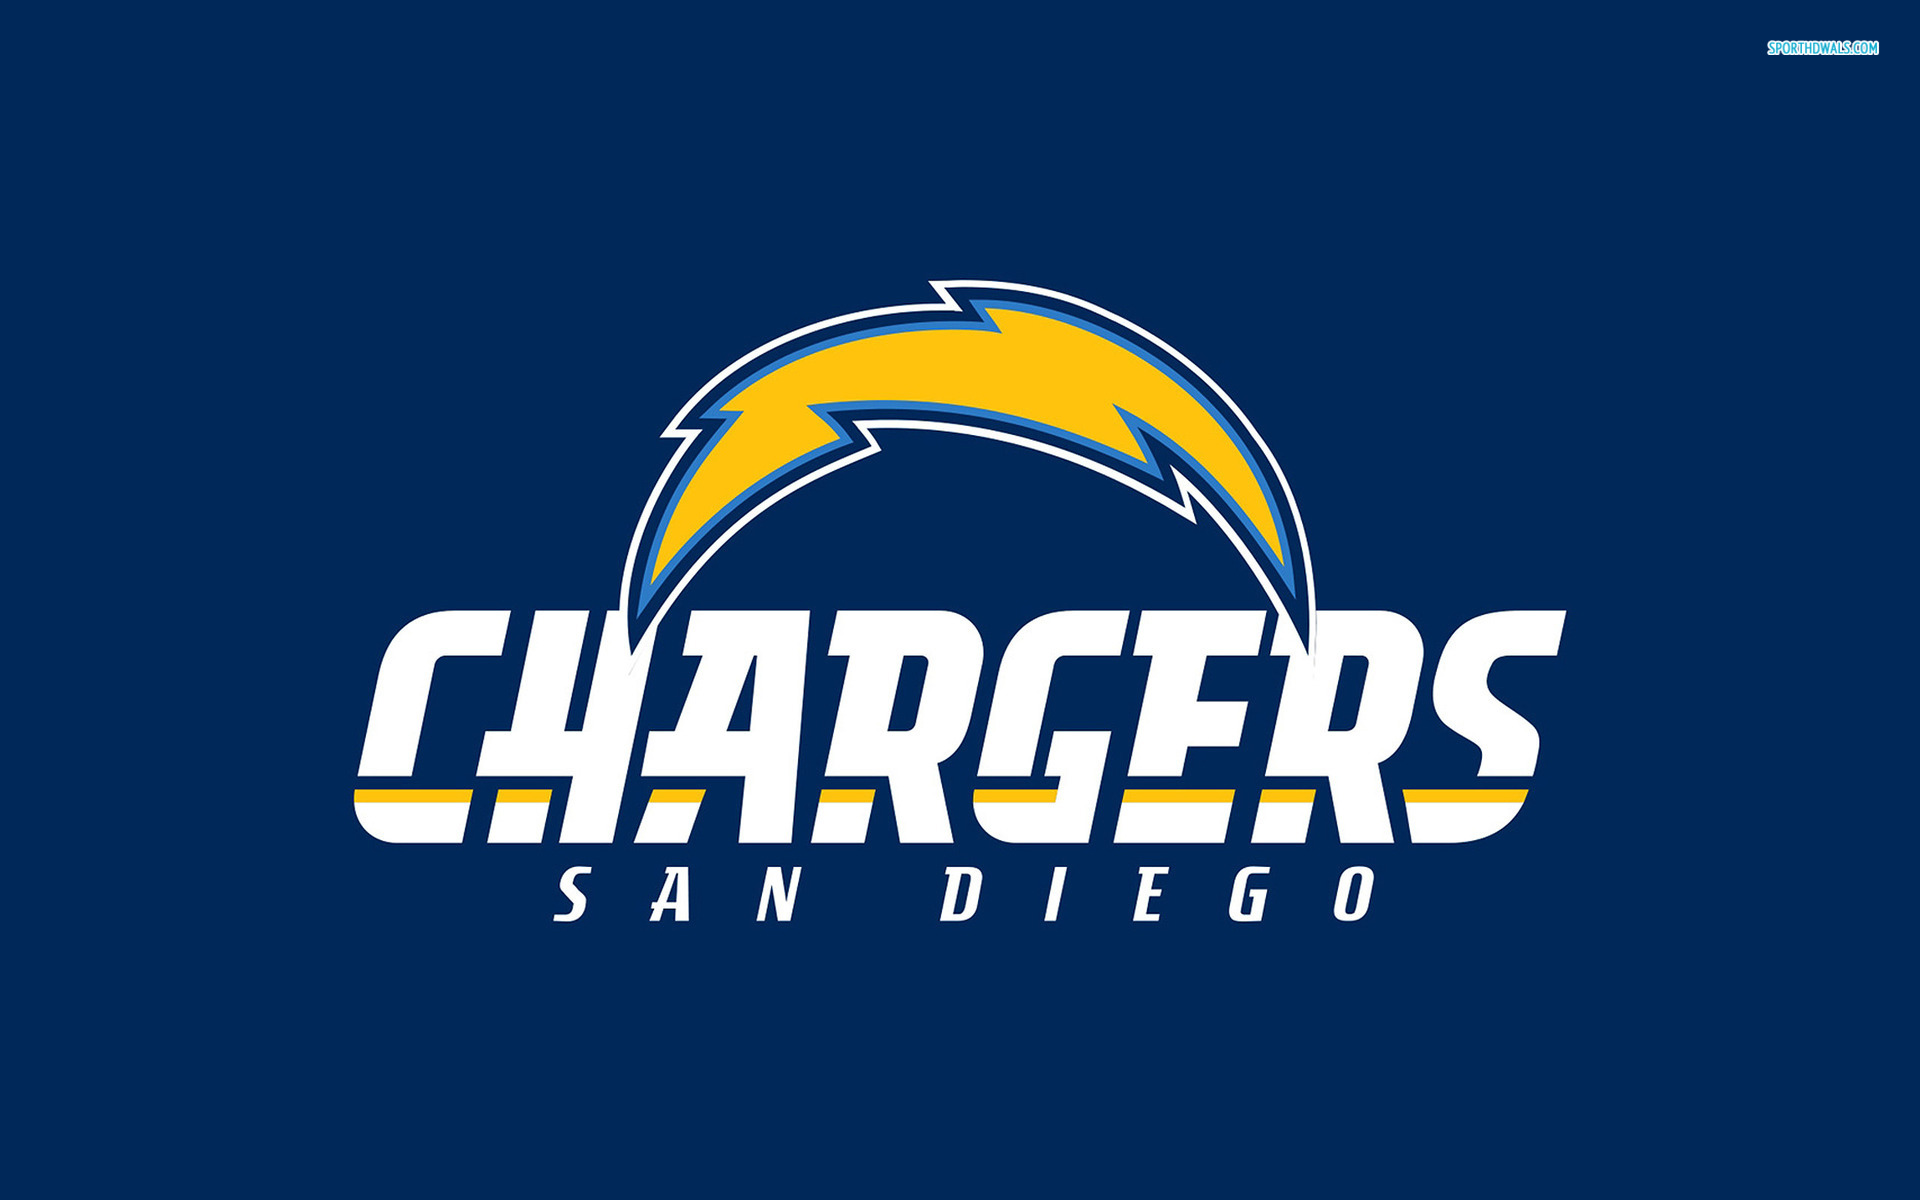 San Diego Chargers wallpaper 1920x1200